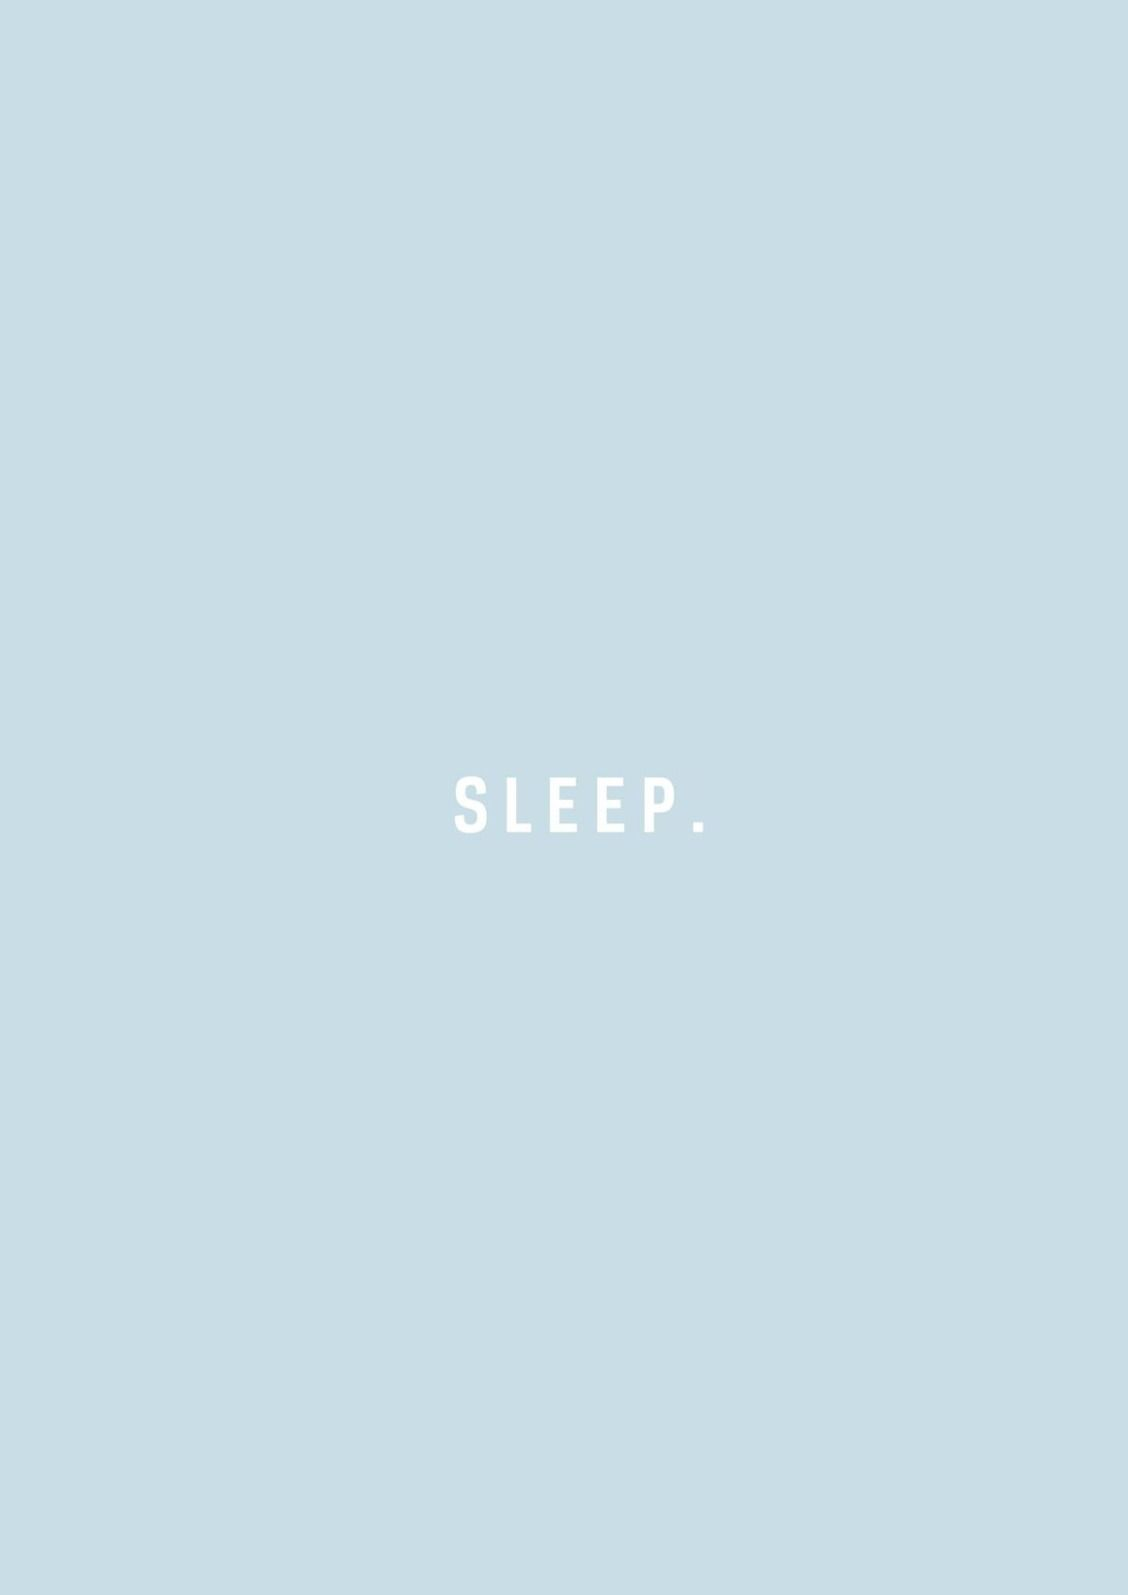 Sleep It S A Sunday Blue Aesthetic Wallpaper Quotes Aesthetic